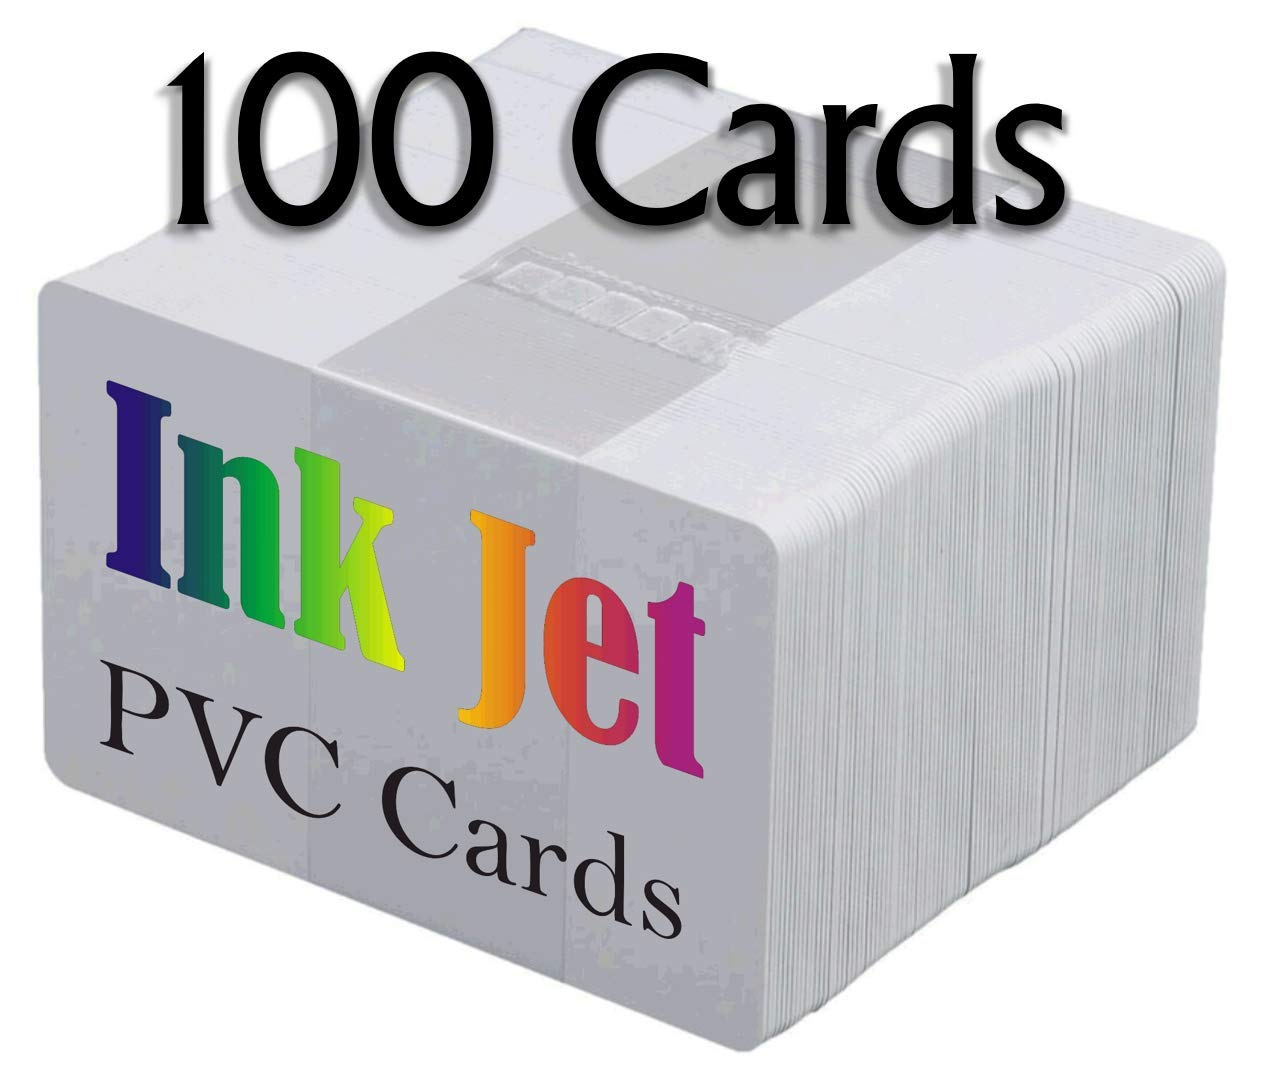 BigInk Inkjet PVC Cards (100 Pack) - 30 Mil - PVC ID Cards, Best Quality, Enhanced Ink Receptive Coating - Waterproof, Double Sided, Edge to Edge Printing.